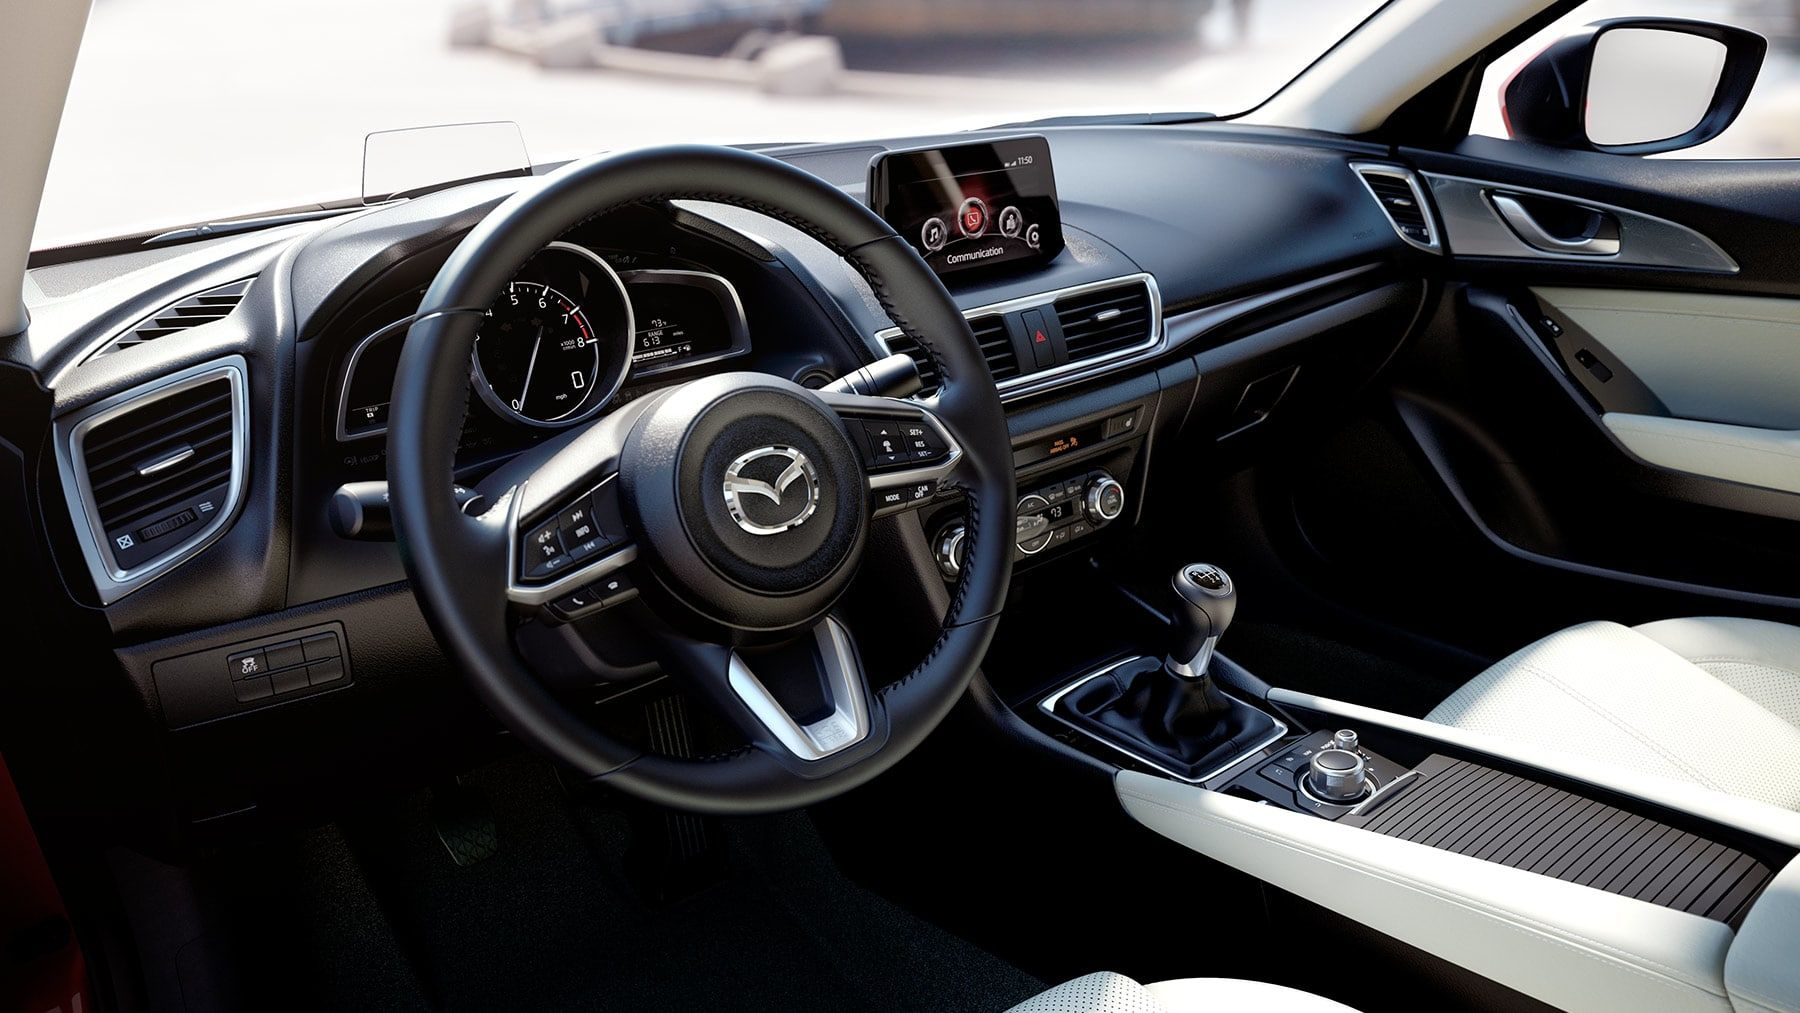 Love the leather wrapped steering wheel on the 2018 Mazda3